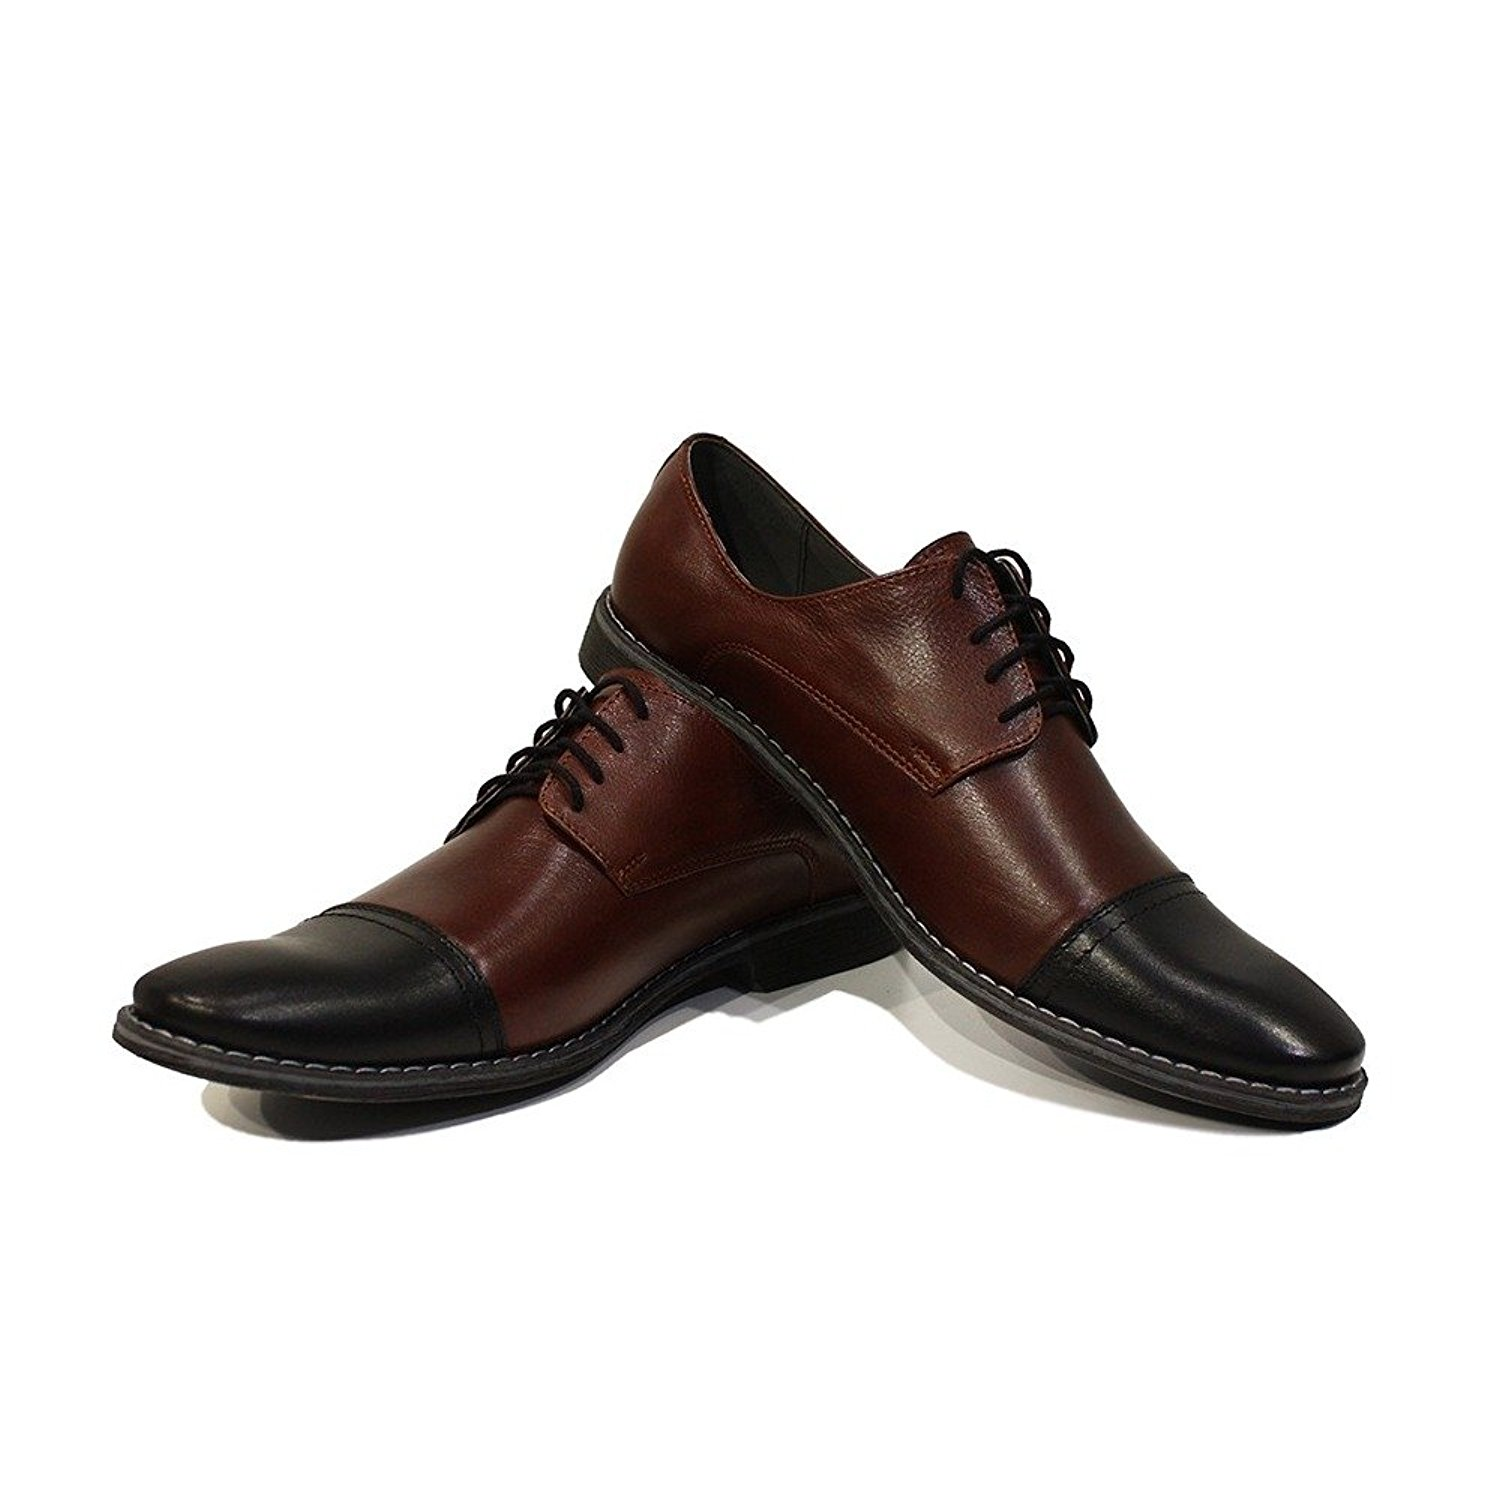 Modello Giobbe - Handmade Italian Mens Brown Oxfords Dress Shoes - Cowhide Smooth Leather - Lace-up